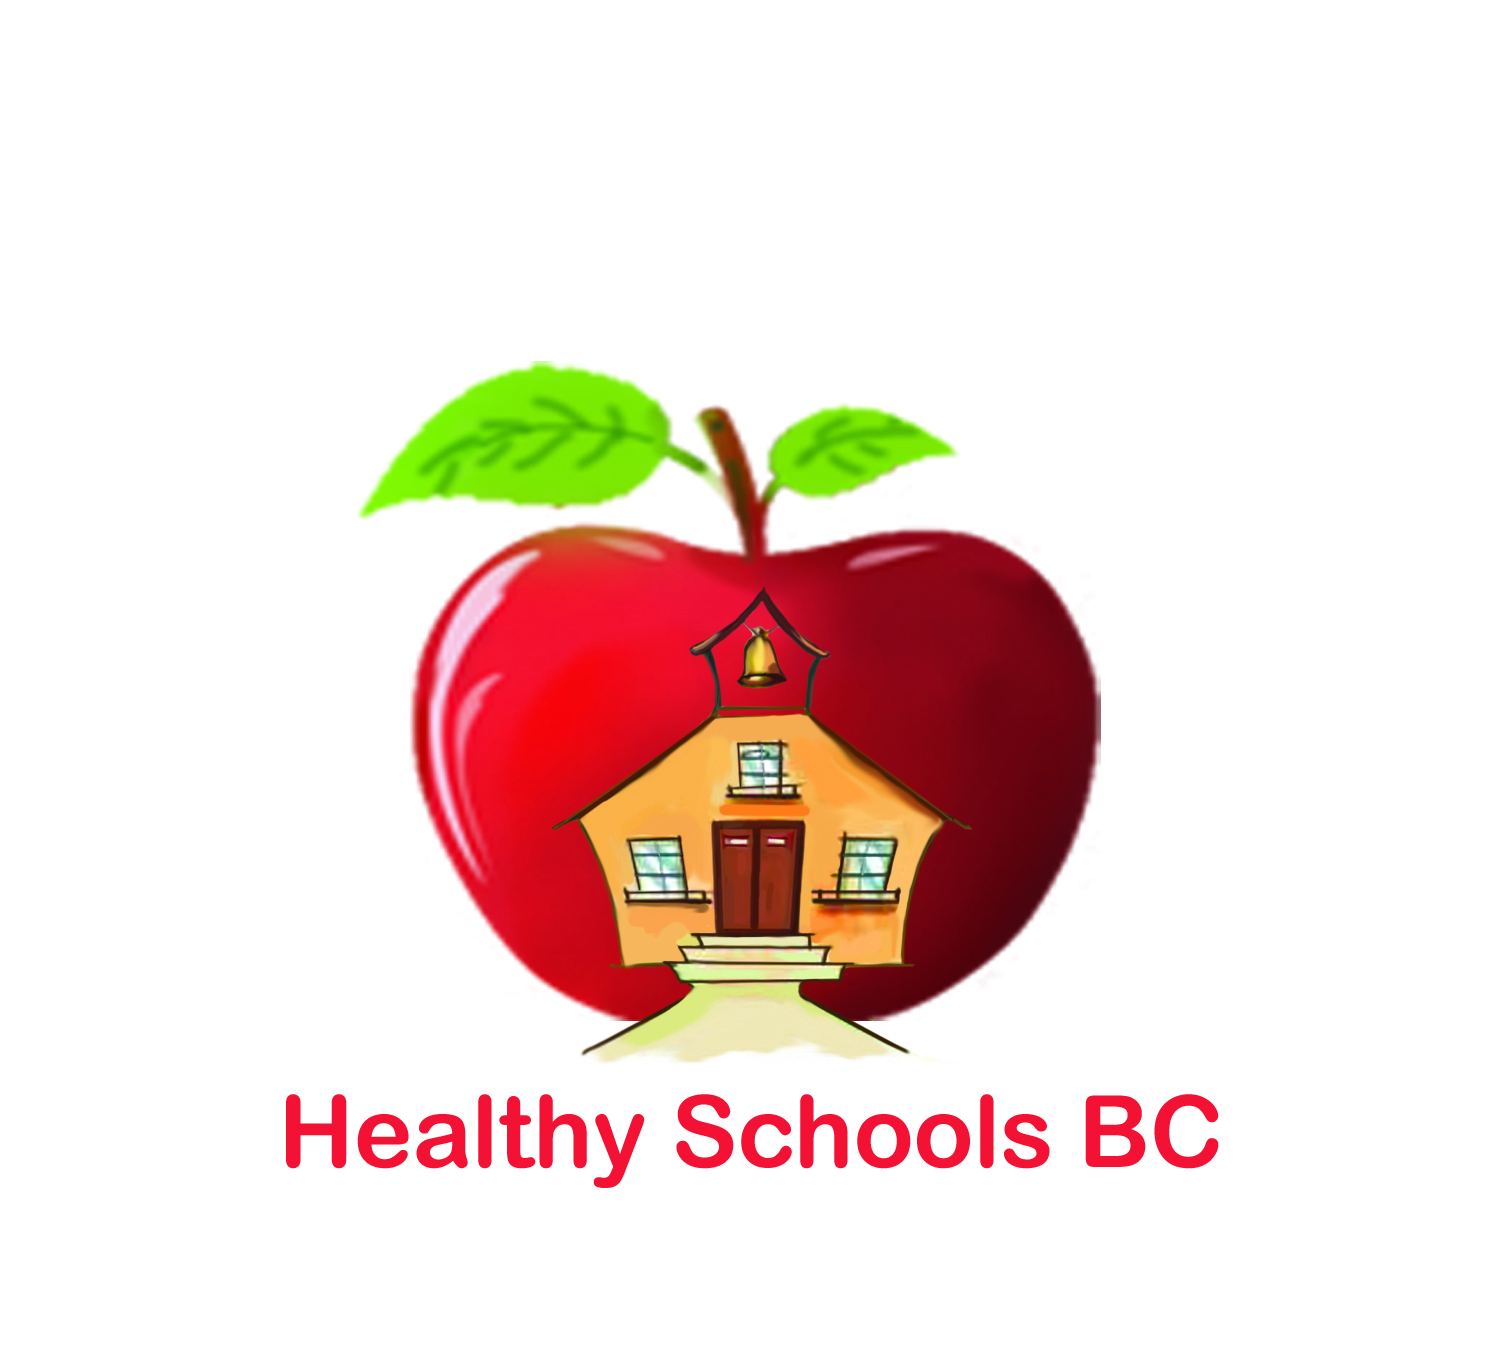 Logo Design by Uroob Rubbani - Entry No. 208 in the Logo Design Contest SImple, Creative and Clean Logo Design for Healthy Schools British Columbia, Canada.